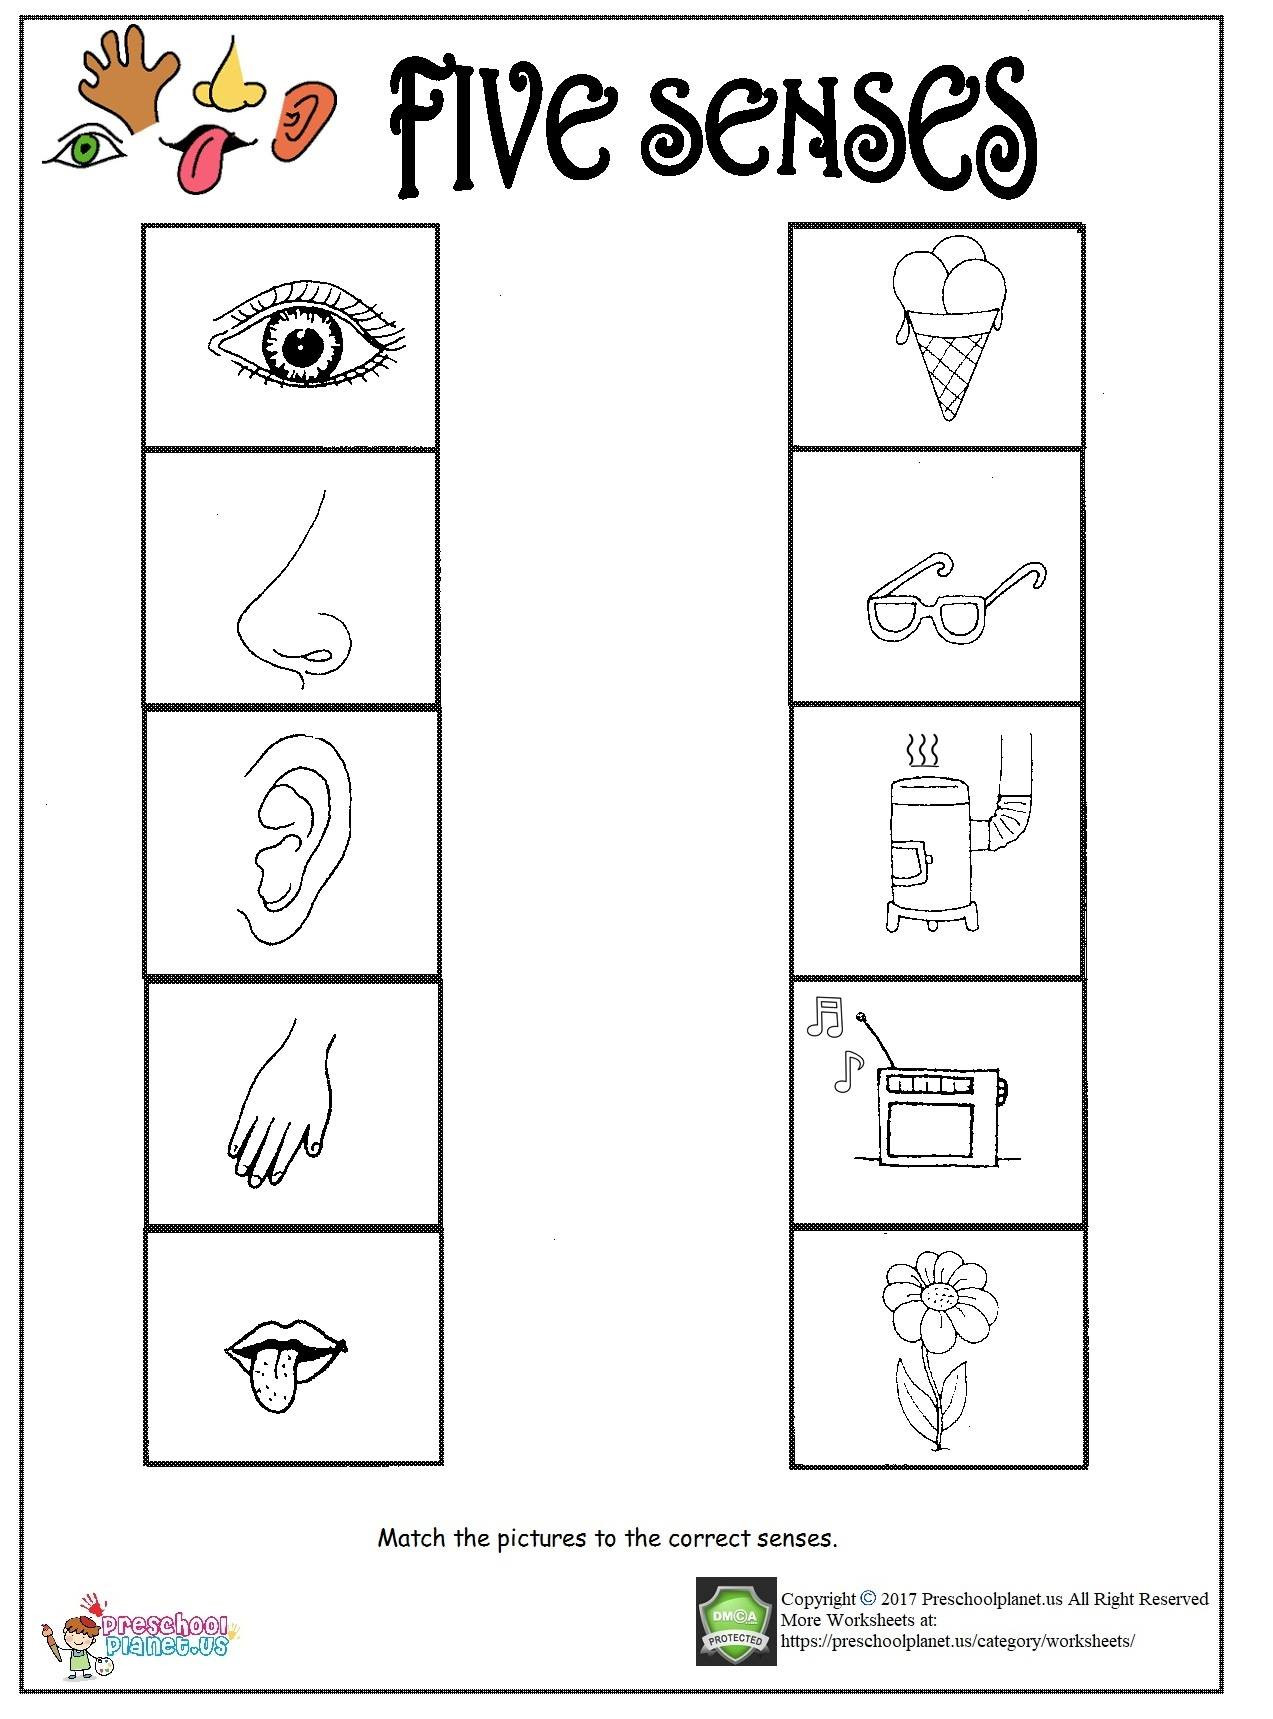 Five Senses Worksheets for Kindergarten sounds Kindergarten Worksheet for Sense